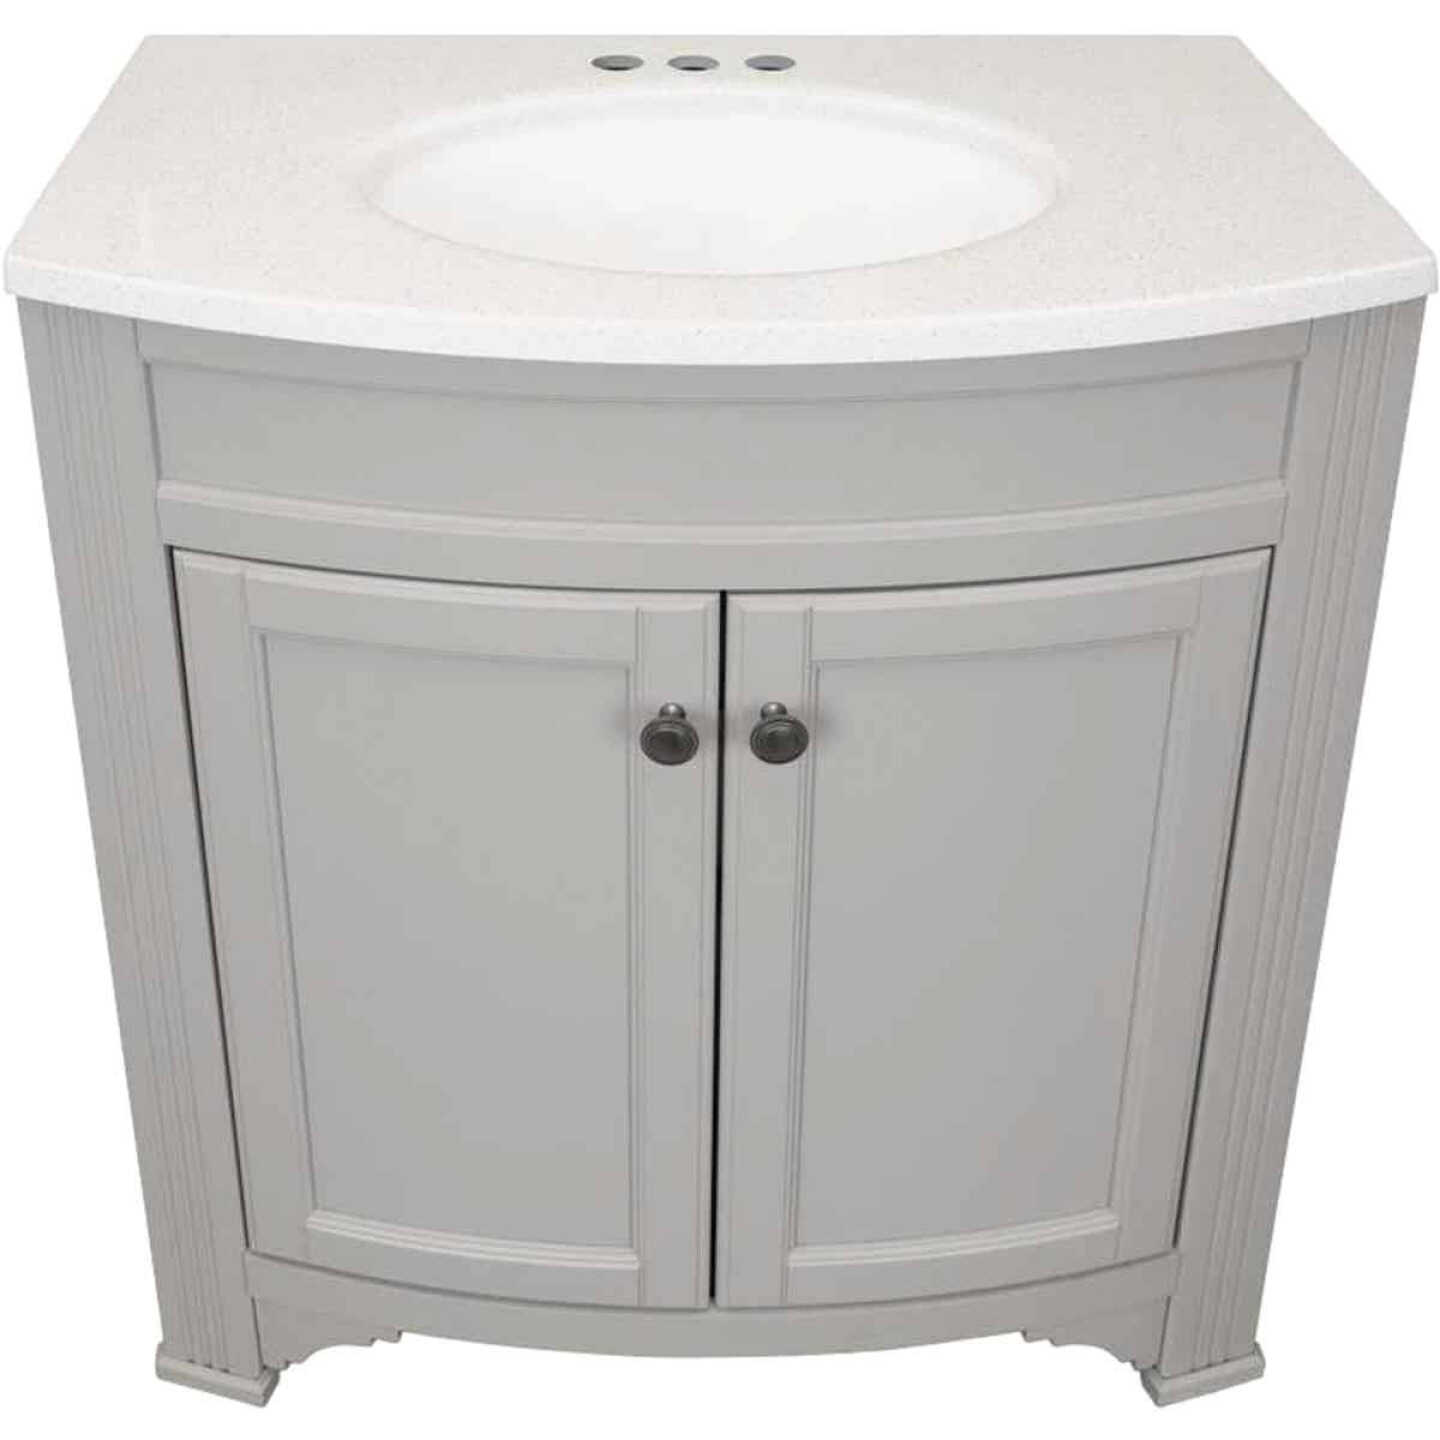 Continental Cabinets Duval Gray 30-1/2 In. W x 34-3/8 In. H x 18-3/4 In. D Vanity with Arctic White Top Image 3